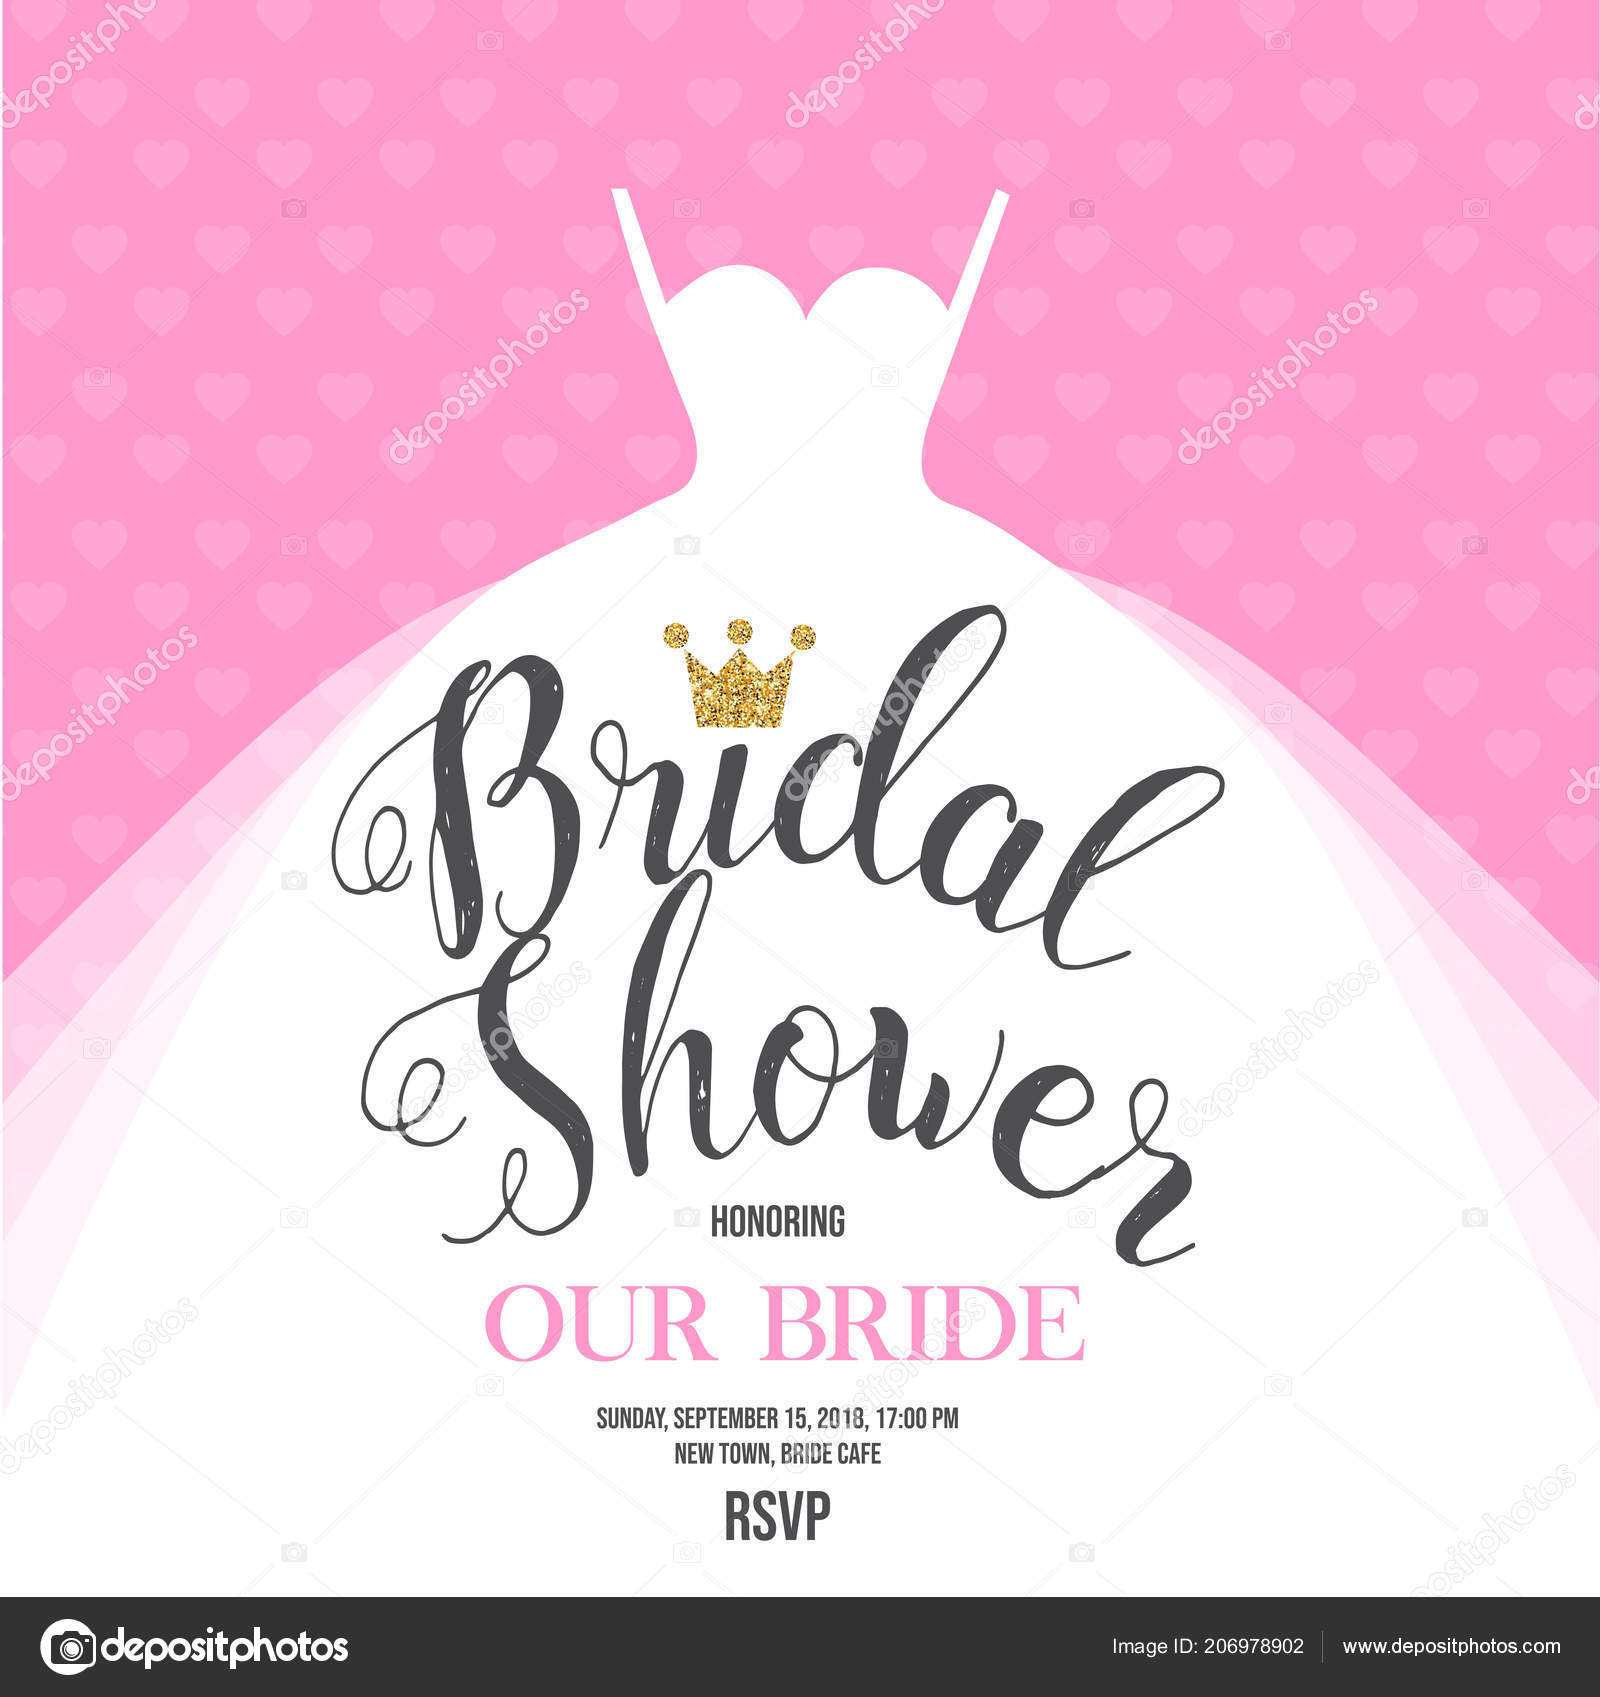 bridal shower invitation wedding dress pink background vector illustration stock vector